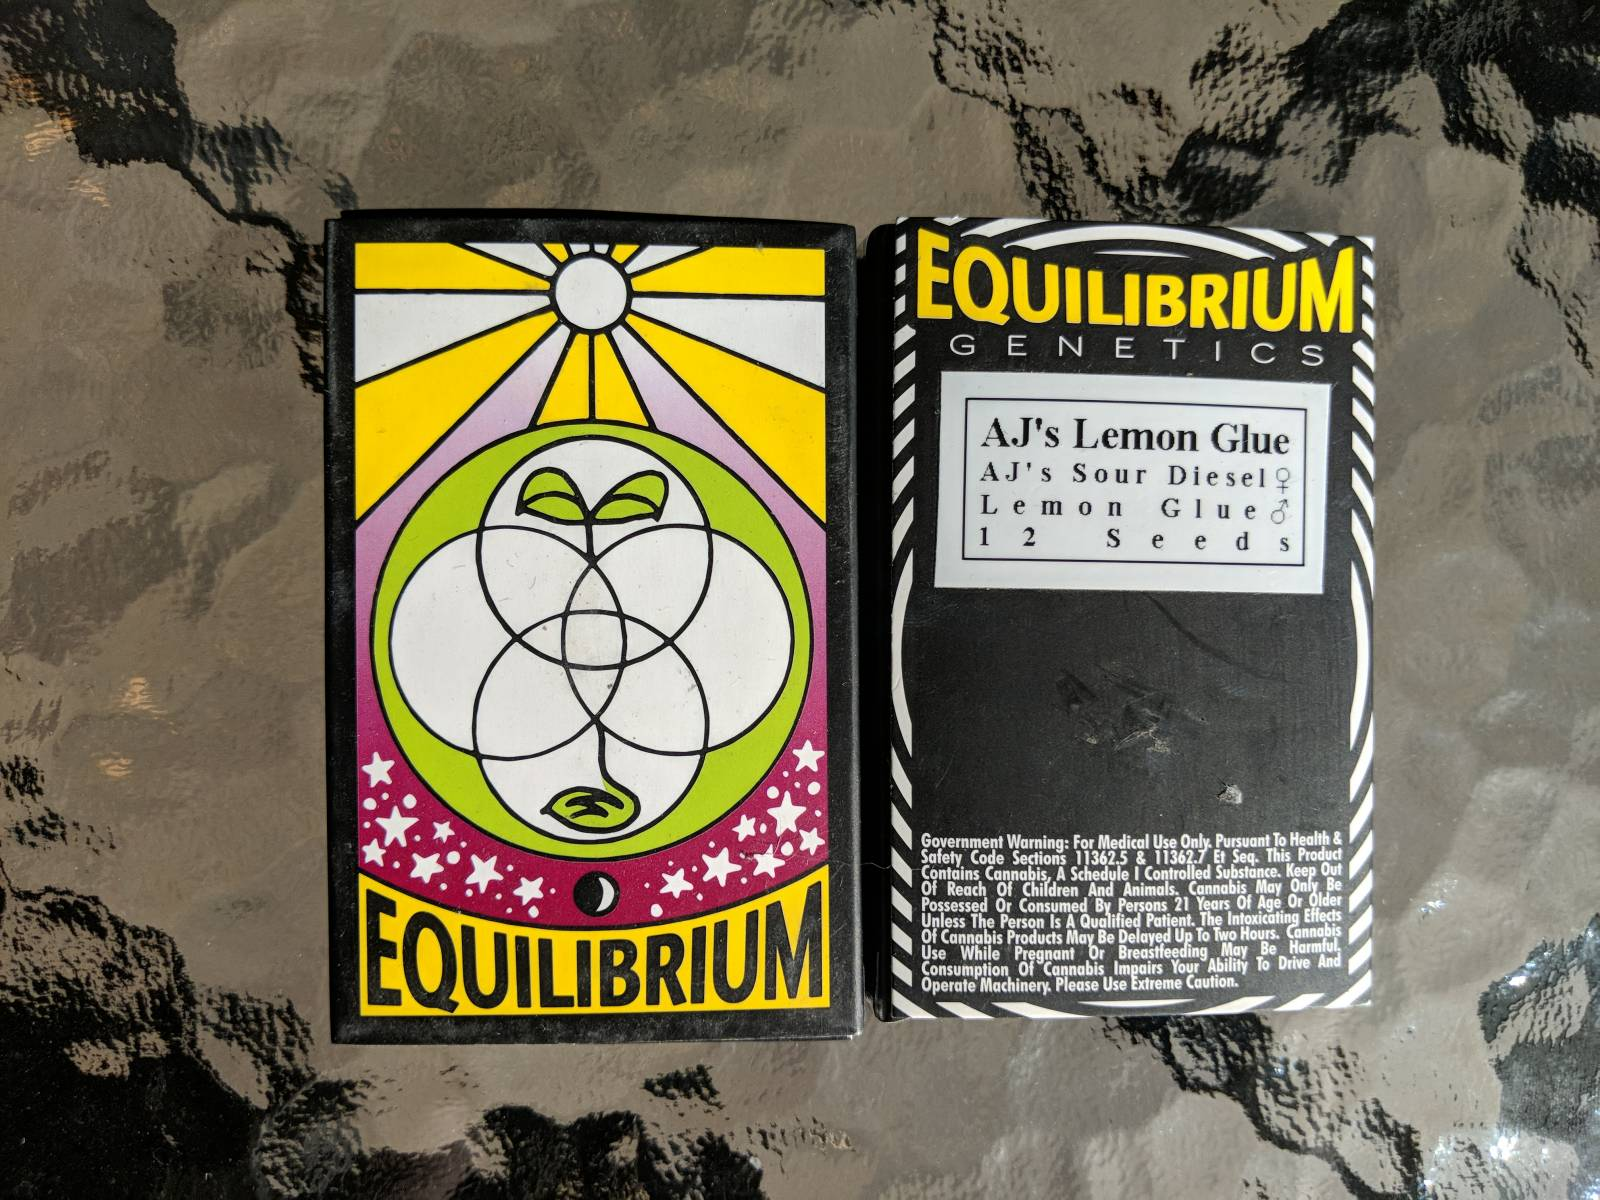 Equilibrium genetics AJ's lemon glue 12 regular seeds